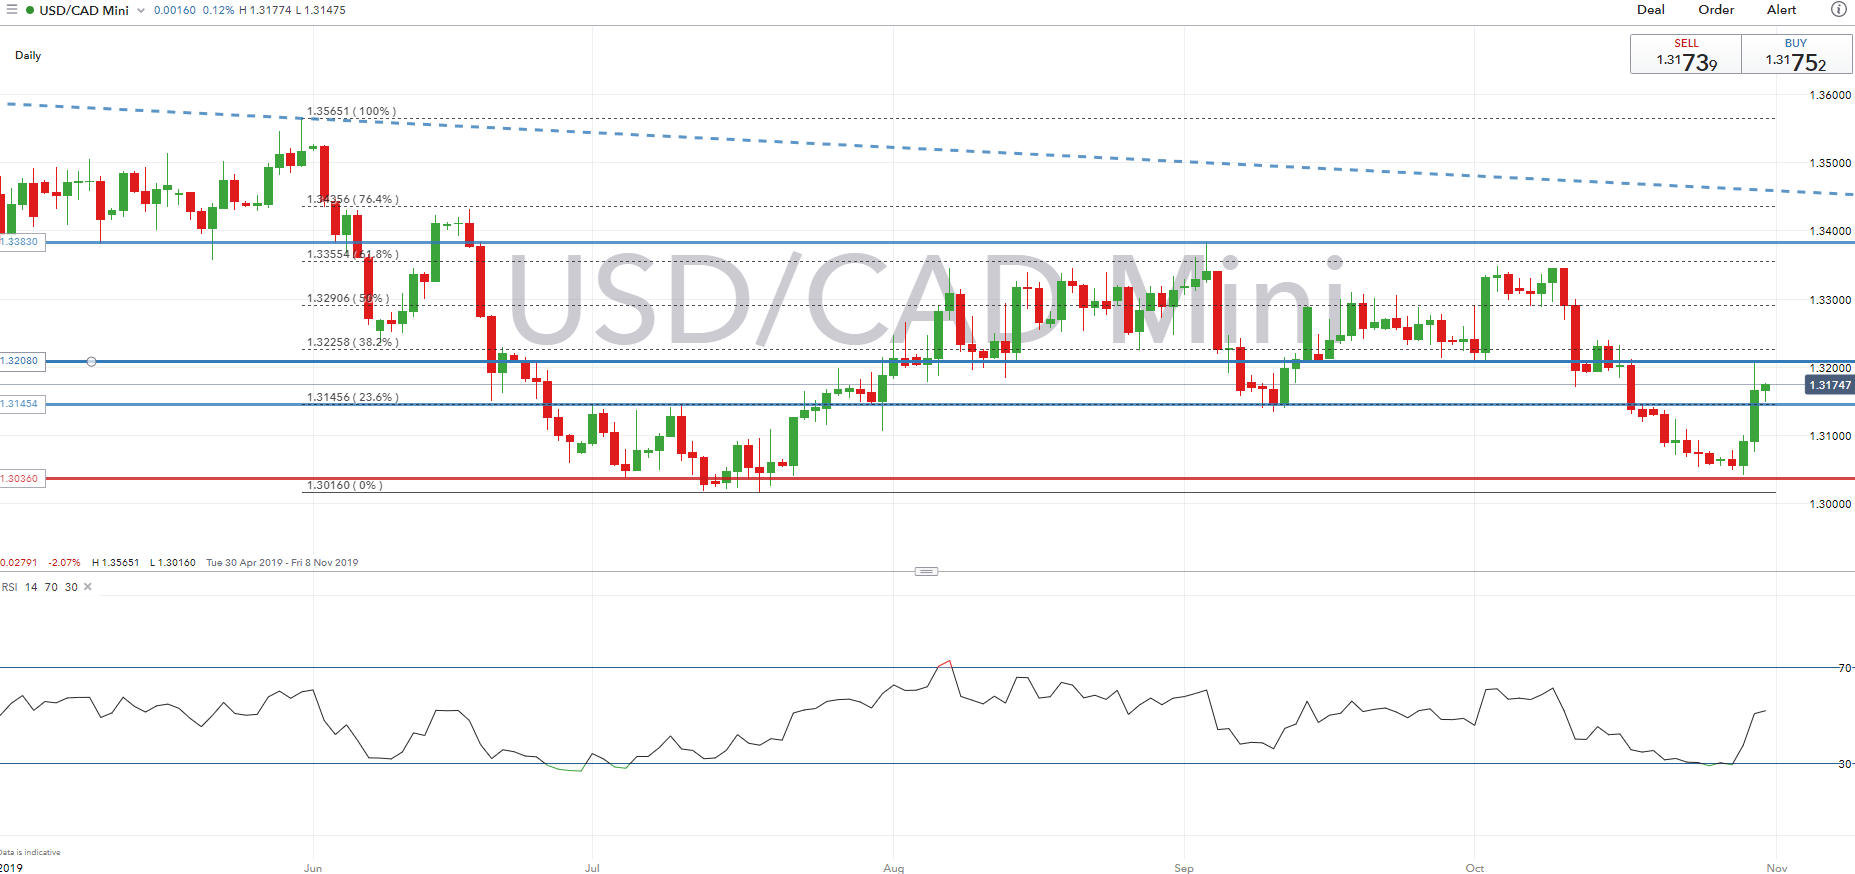 USD/CAD price chart (Apr 19 – Oct 19)